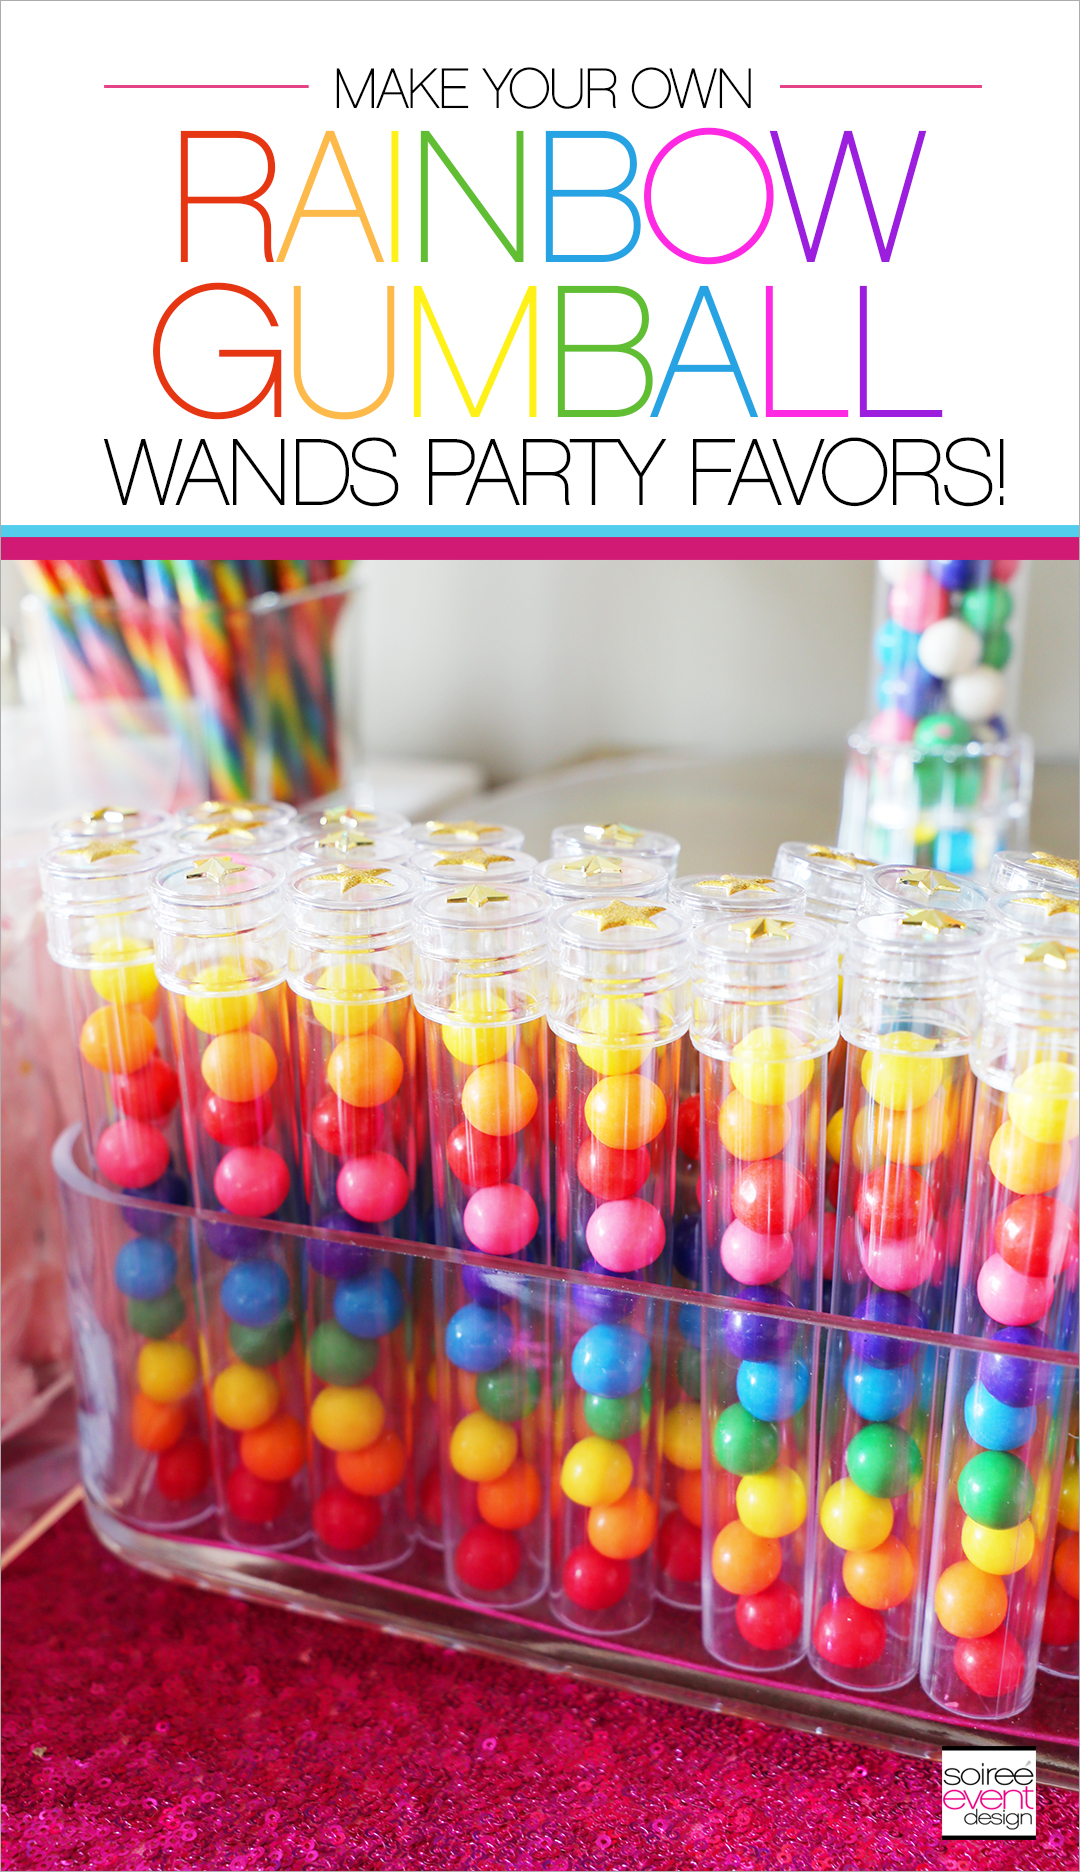 Rainbow Unicorn Emoji Party Ideas - Gumball Wands